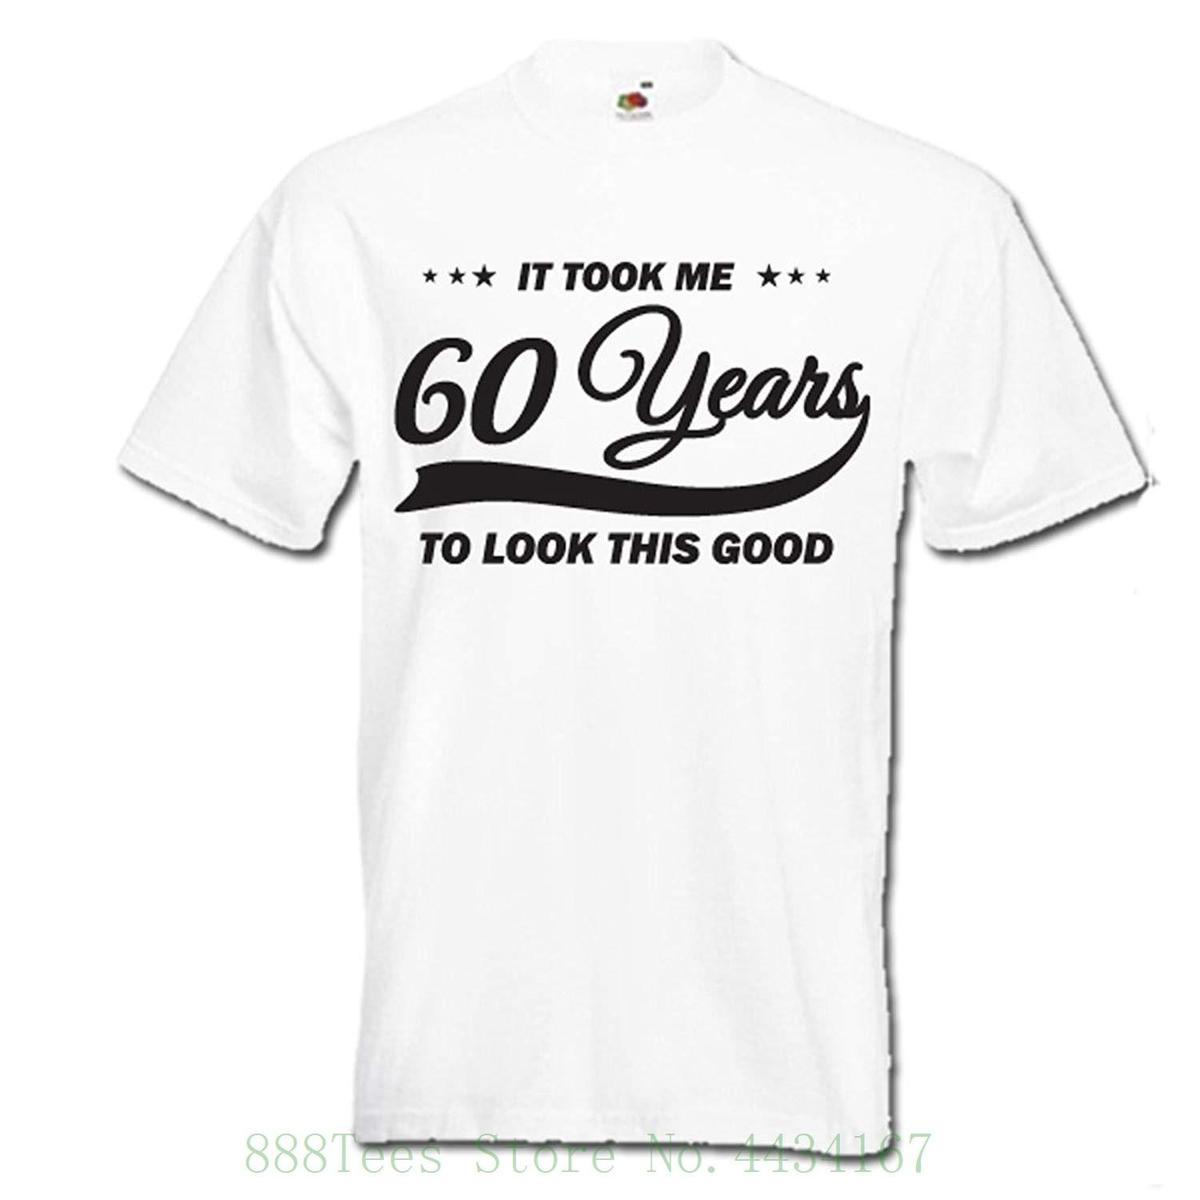 It Took Me 60 Years To Look This Good Funny 60th Birthday Gift Idea Mens Womens Unisex T Shirt Tshirt Casual O Neck Men Shirts Geek From